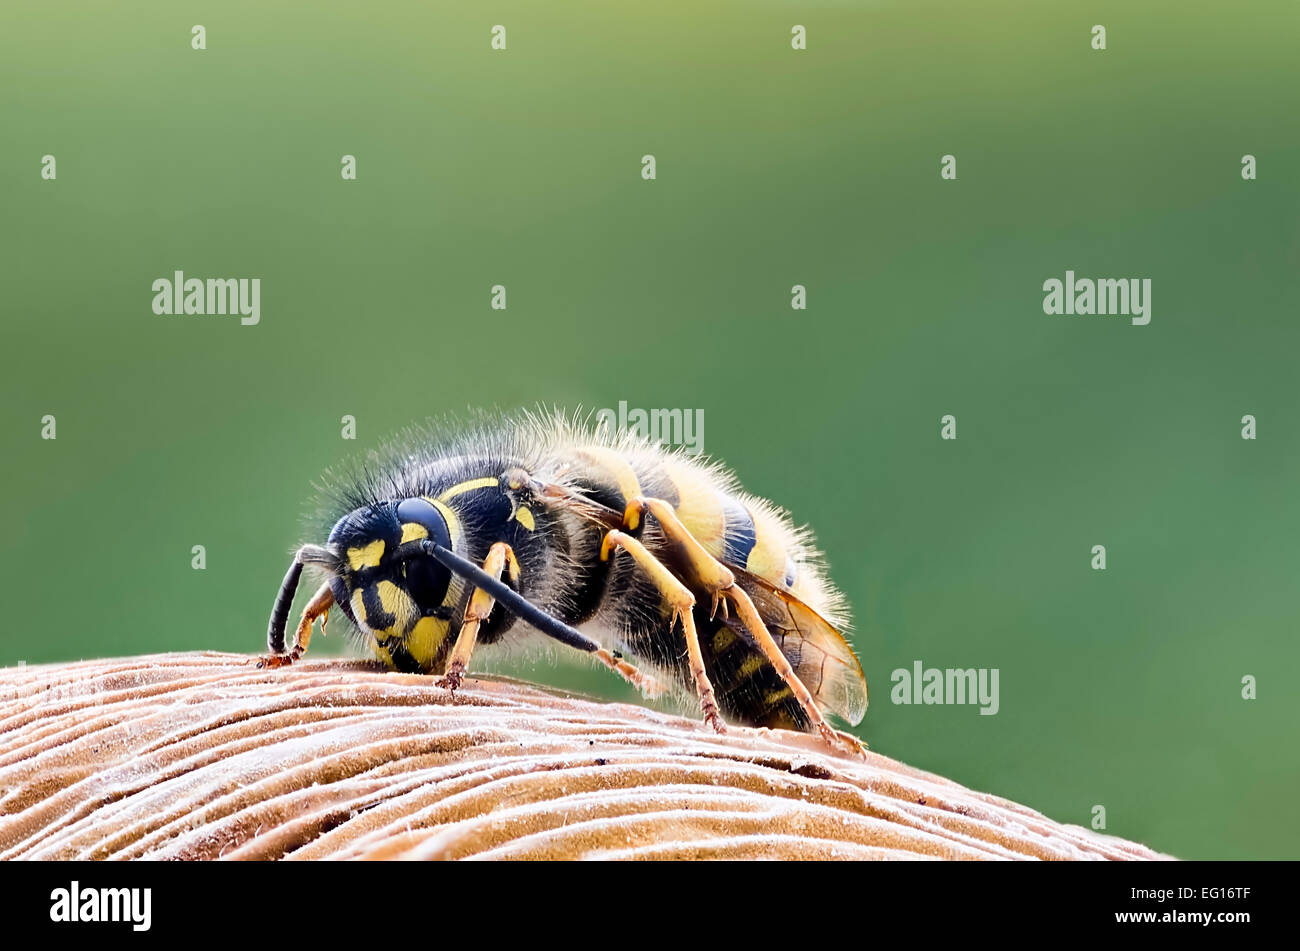 image of common wasp vespula vulgaris macro face head uk all of insect is in focus - Stock Image